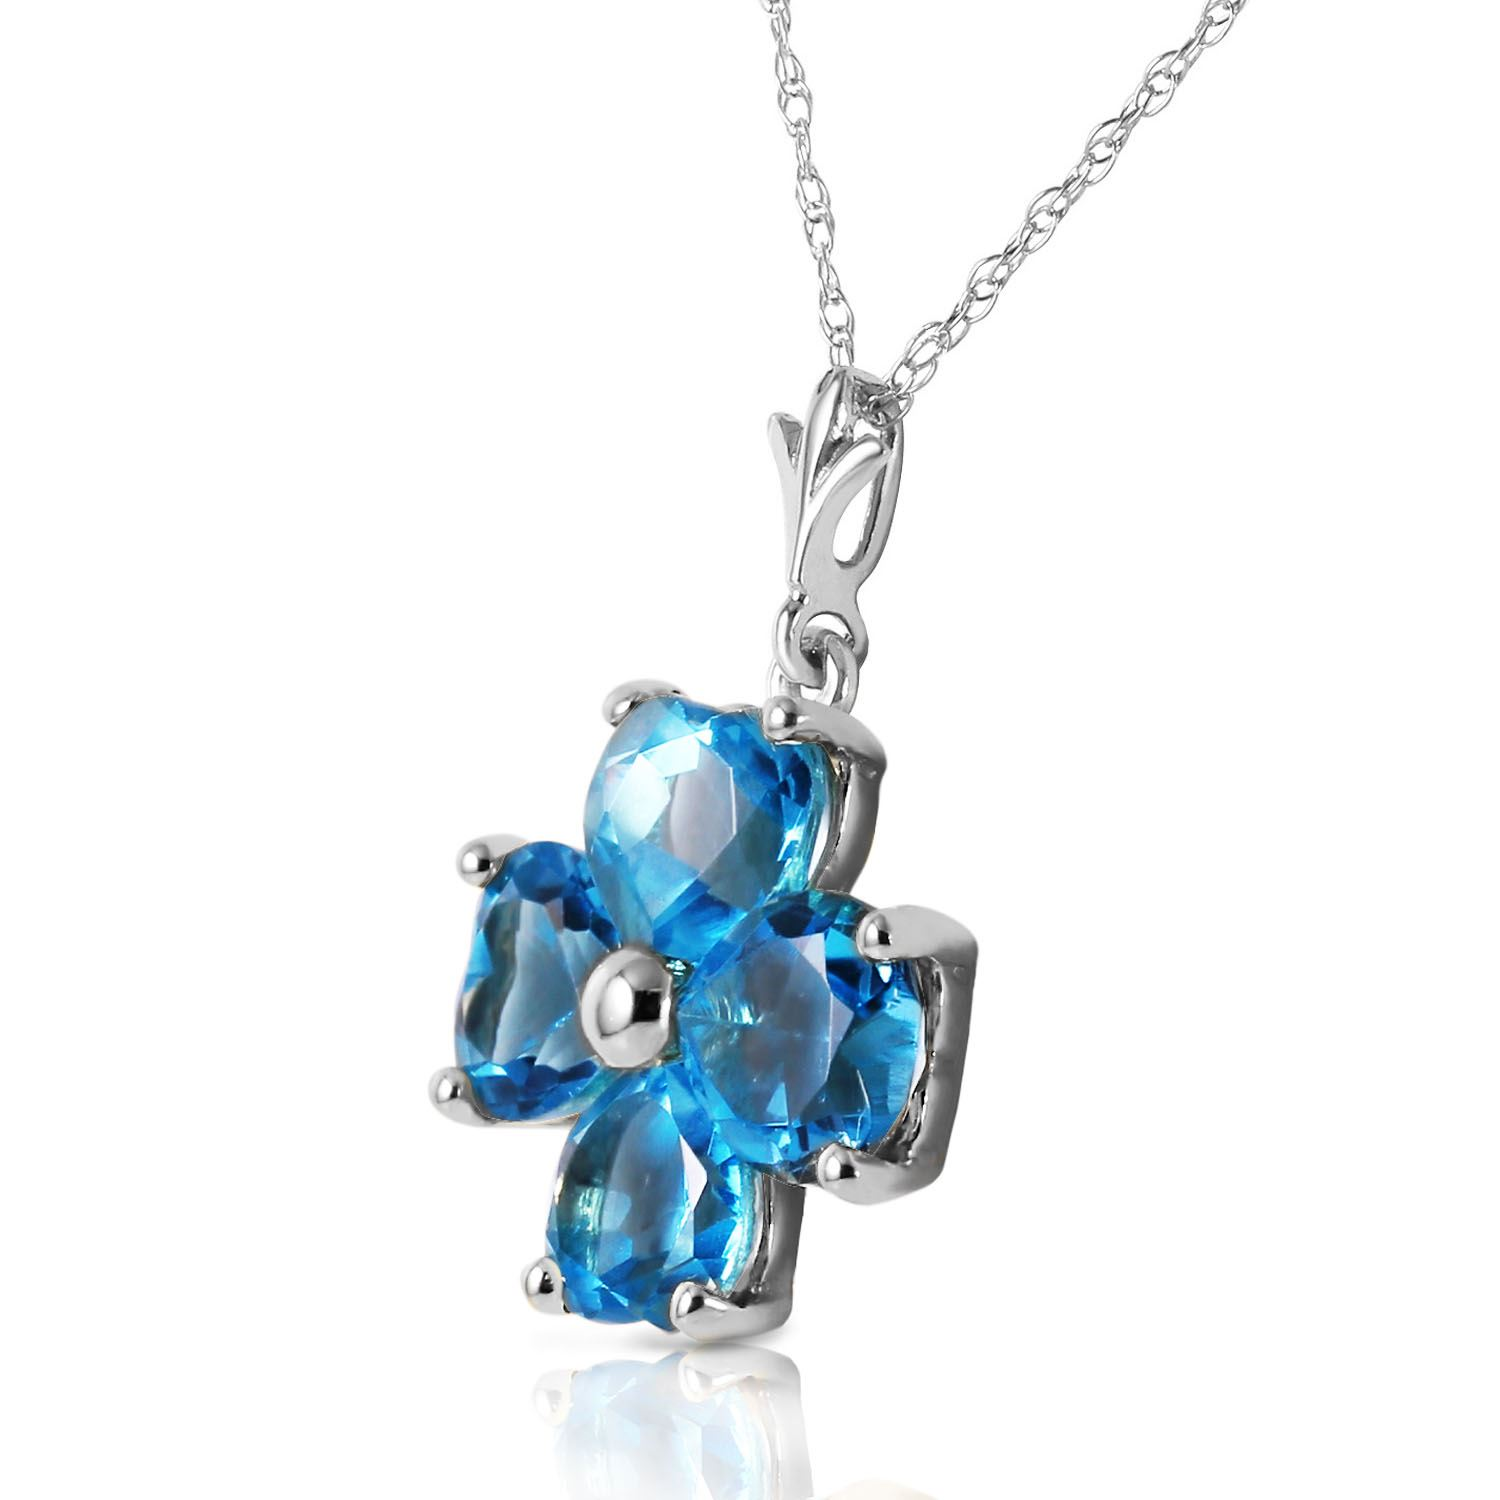 ALARRI 14K Solid White Gold Heart Necklace w// Natural Blue Topaz with 24 Inch Chain Length